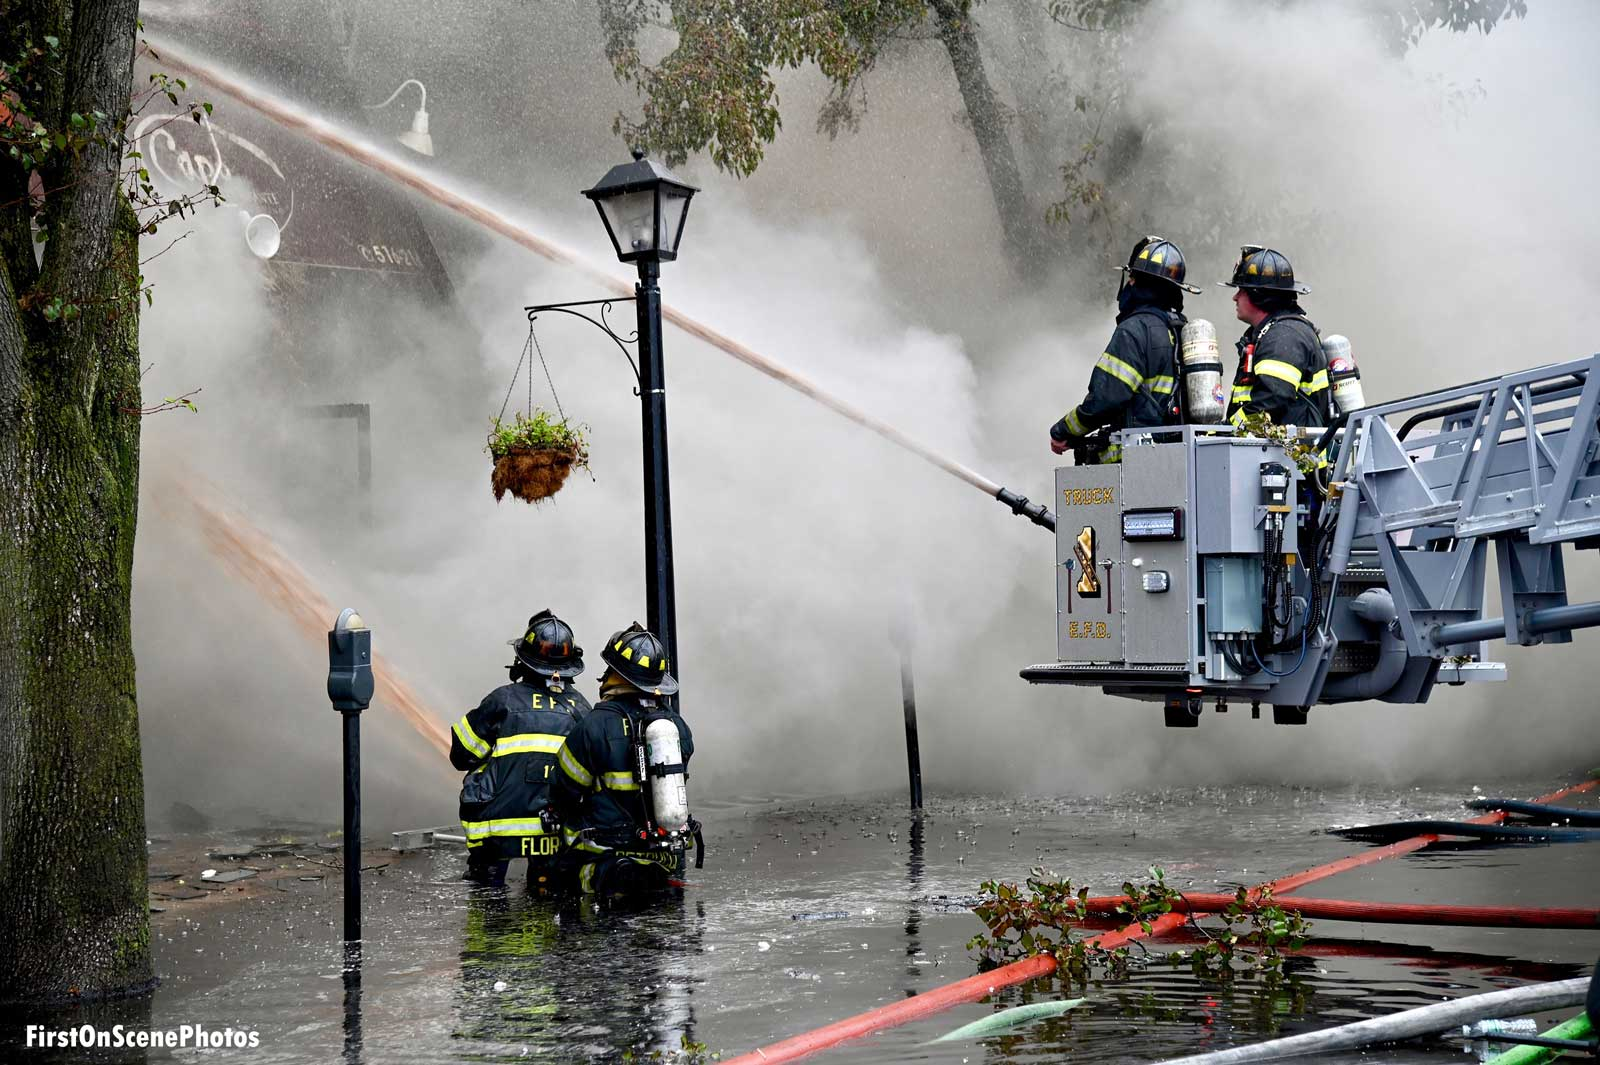 Firefighters on the ground and in a bucket aiming hose streams